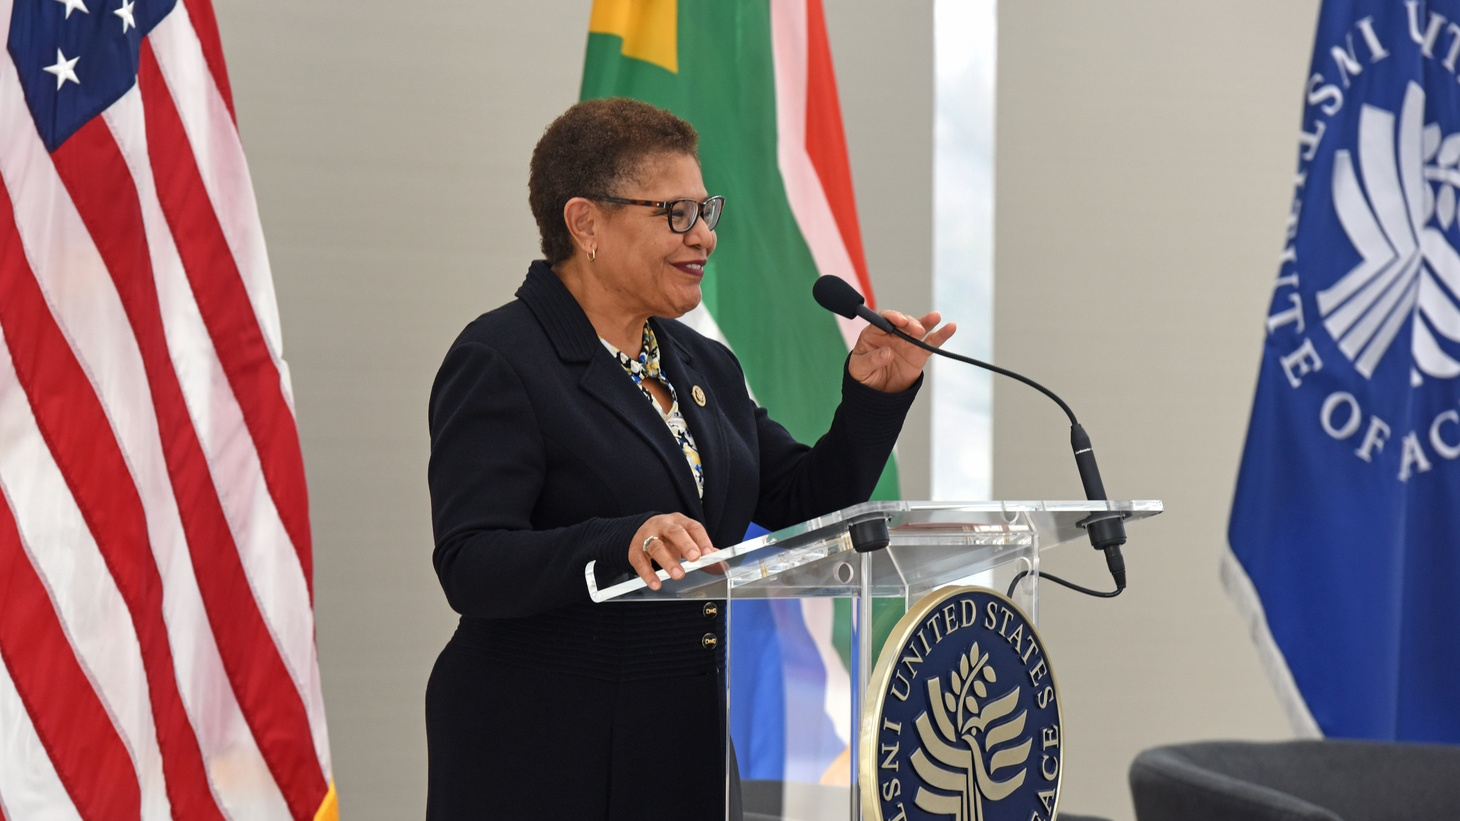 Karen Bass worked in Cuba, became an activist in South LA, climbed the ranks in the California State Assembly, and has been in Congress since 2011. Now she's on Joe Biden's shortlist for vice president.